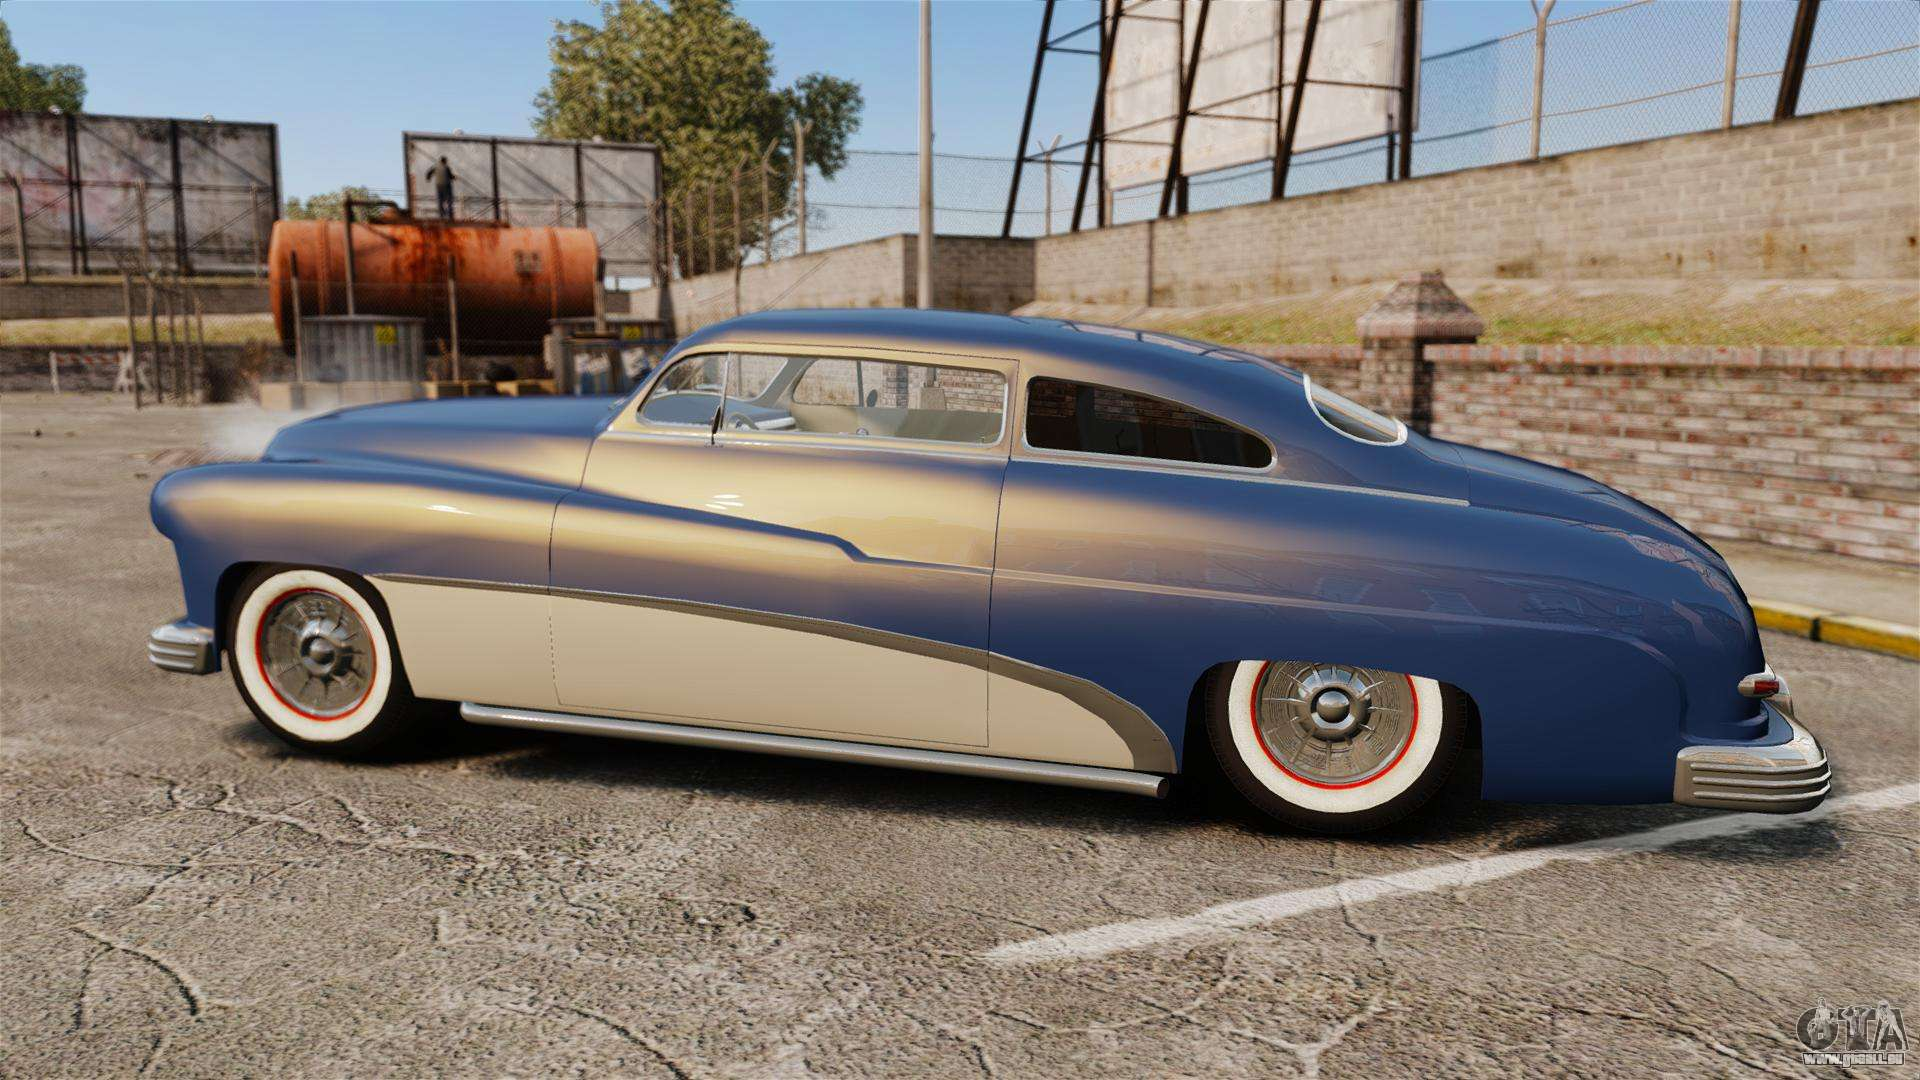 1949 Mercury Sedan For Sale: Search Results 1949 Mercury Custom Coupe Lead Sled For